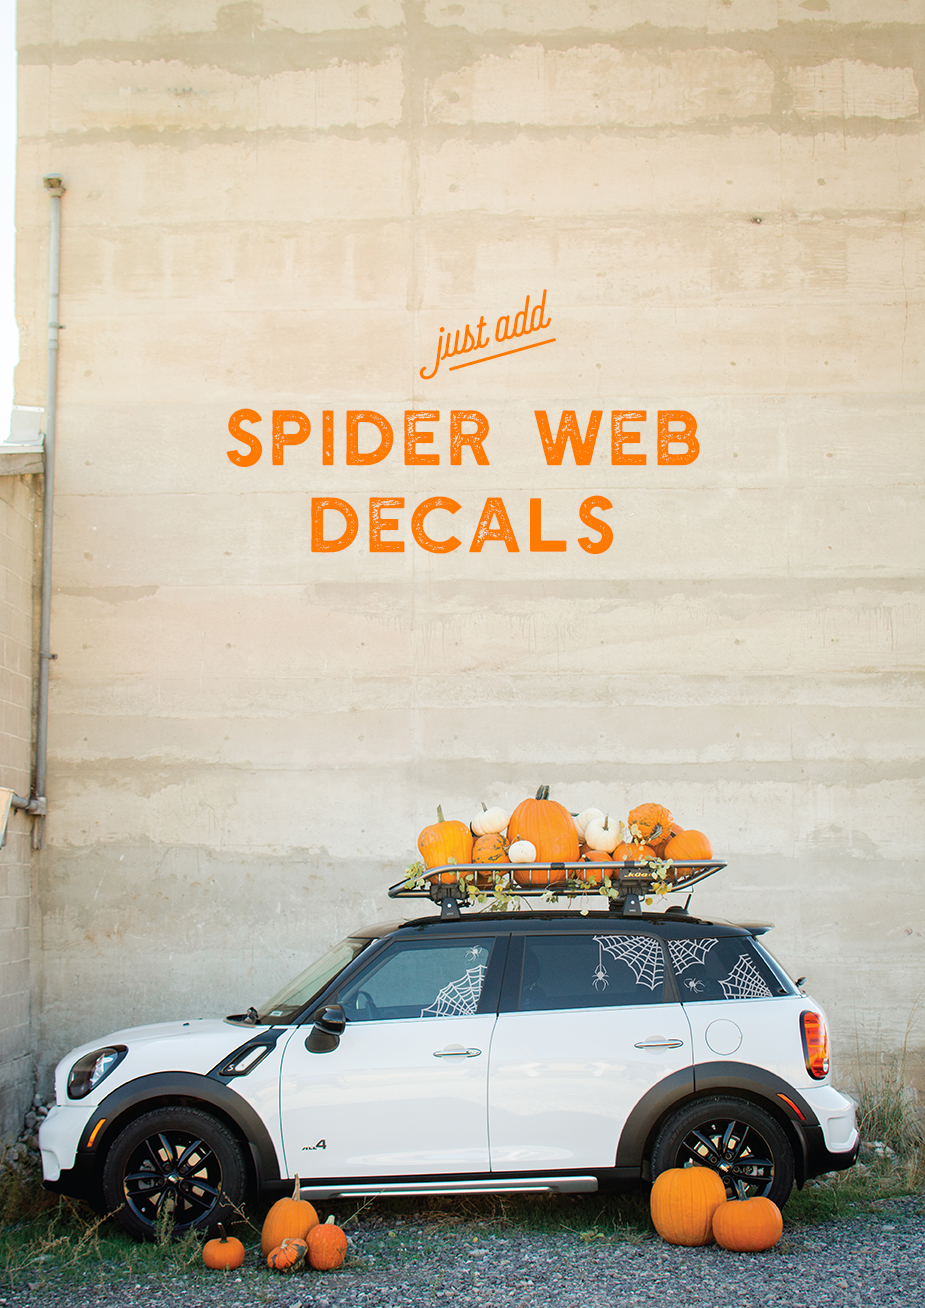 """<p>For those who want to show off their pumpkin décor all over town, opt for a pumpkin patch car. It will look great in your driveway and on the go!</p><p><strong>See more at <a href=""""https://thehousethatlarsbuilt.com/2017/10/pumpkin-patch-car-and-spider-web-decals.html/"""" rel=""""nofollow noopener"""" target=""""_blank"""" data-ylk=""""slk:The House That Lars Built"""" class=""""link rapid-noclick-resp"""">The House That Lars Built</a>. </strong></p><p><a class=""""link rapid-noclick-resp"""" href=""""https://www.amazon.com/ARKSEN-Universal-Extension-Luggage-Carrier/dp/B07RM4HWMD?tag=syn-yahoo-20&ascsubtag=%5Bartid%7C2164.g.36877187%5Bsrc%7Cyahoo-us"""" rel=""""nofollow noopener"""" target=""""_blank"""" data-ylk=""""slk:SHOP CAR RACKS"""">SHOP CAR RACKS</a></p>"""